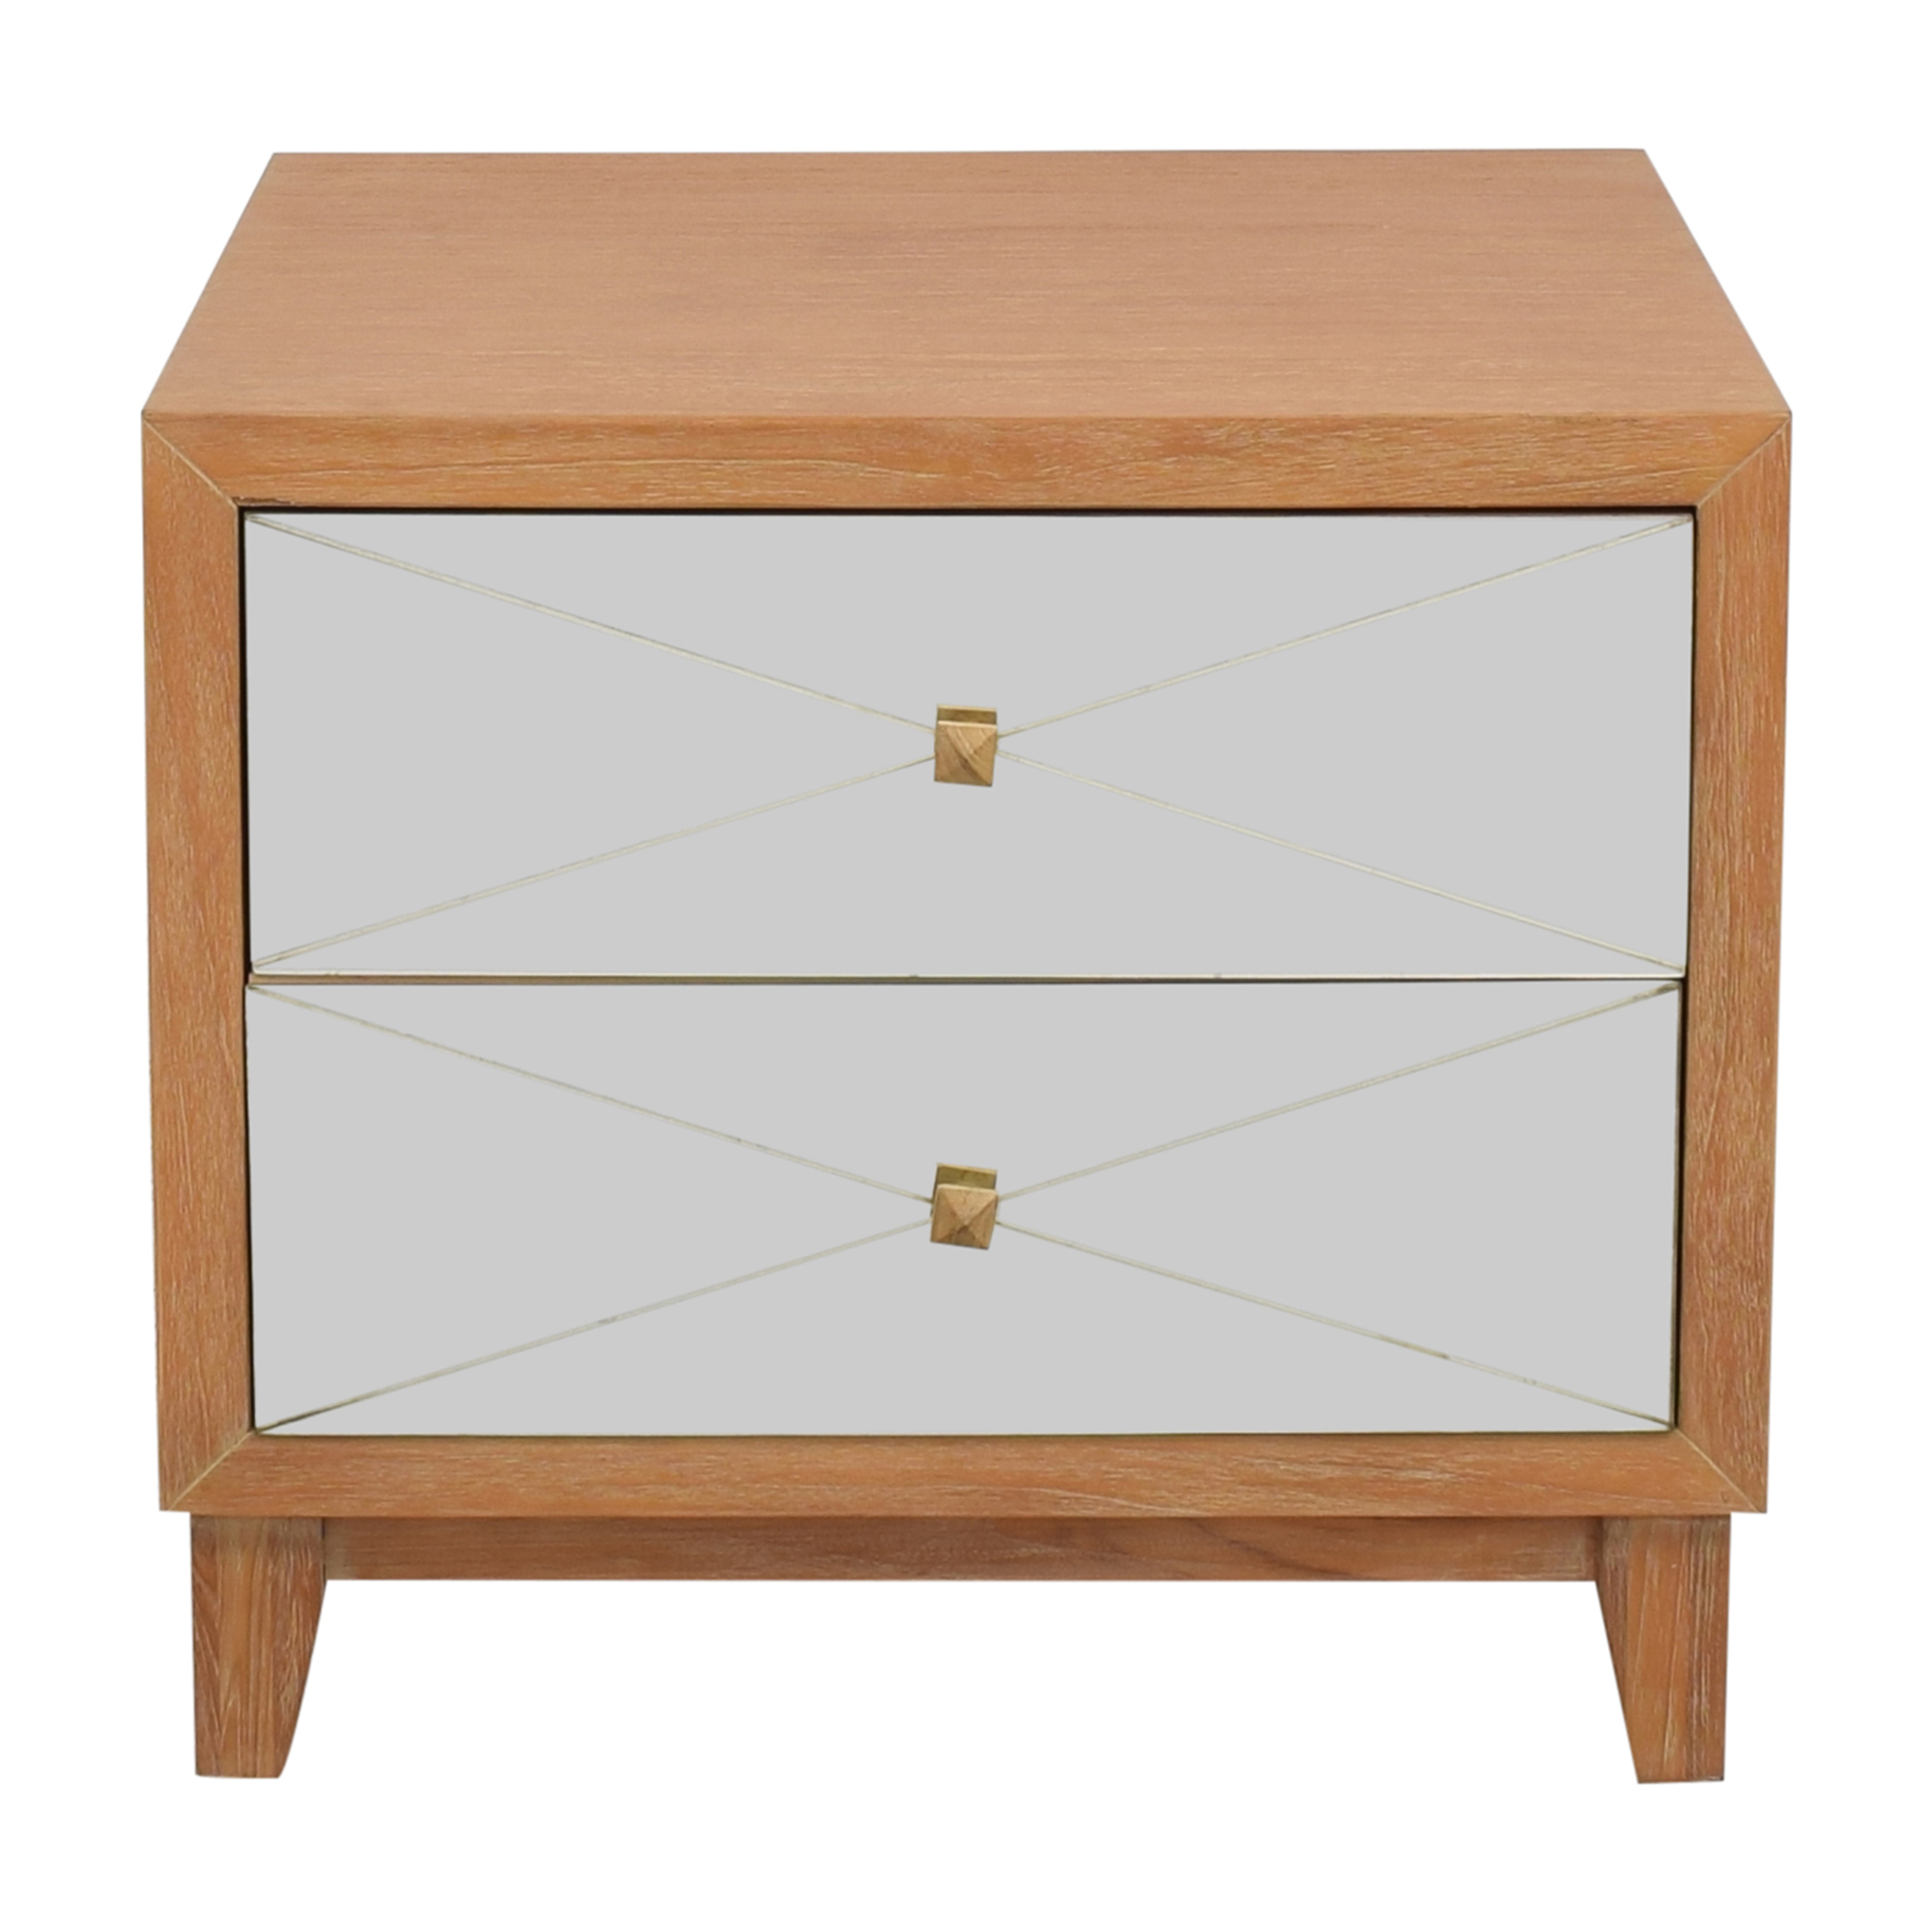 Brownstone Furniture Brownstone Furniture Mirrored Nightstand ma